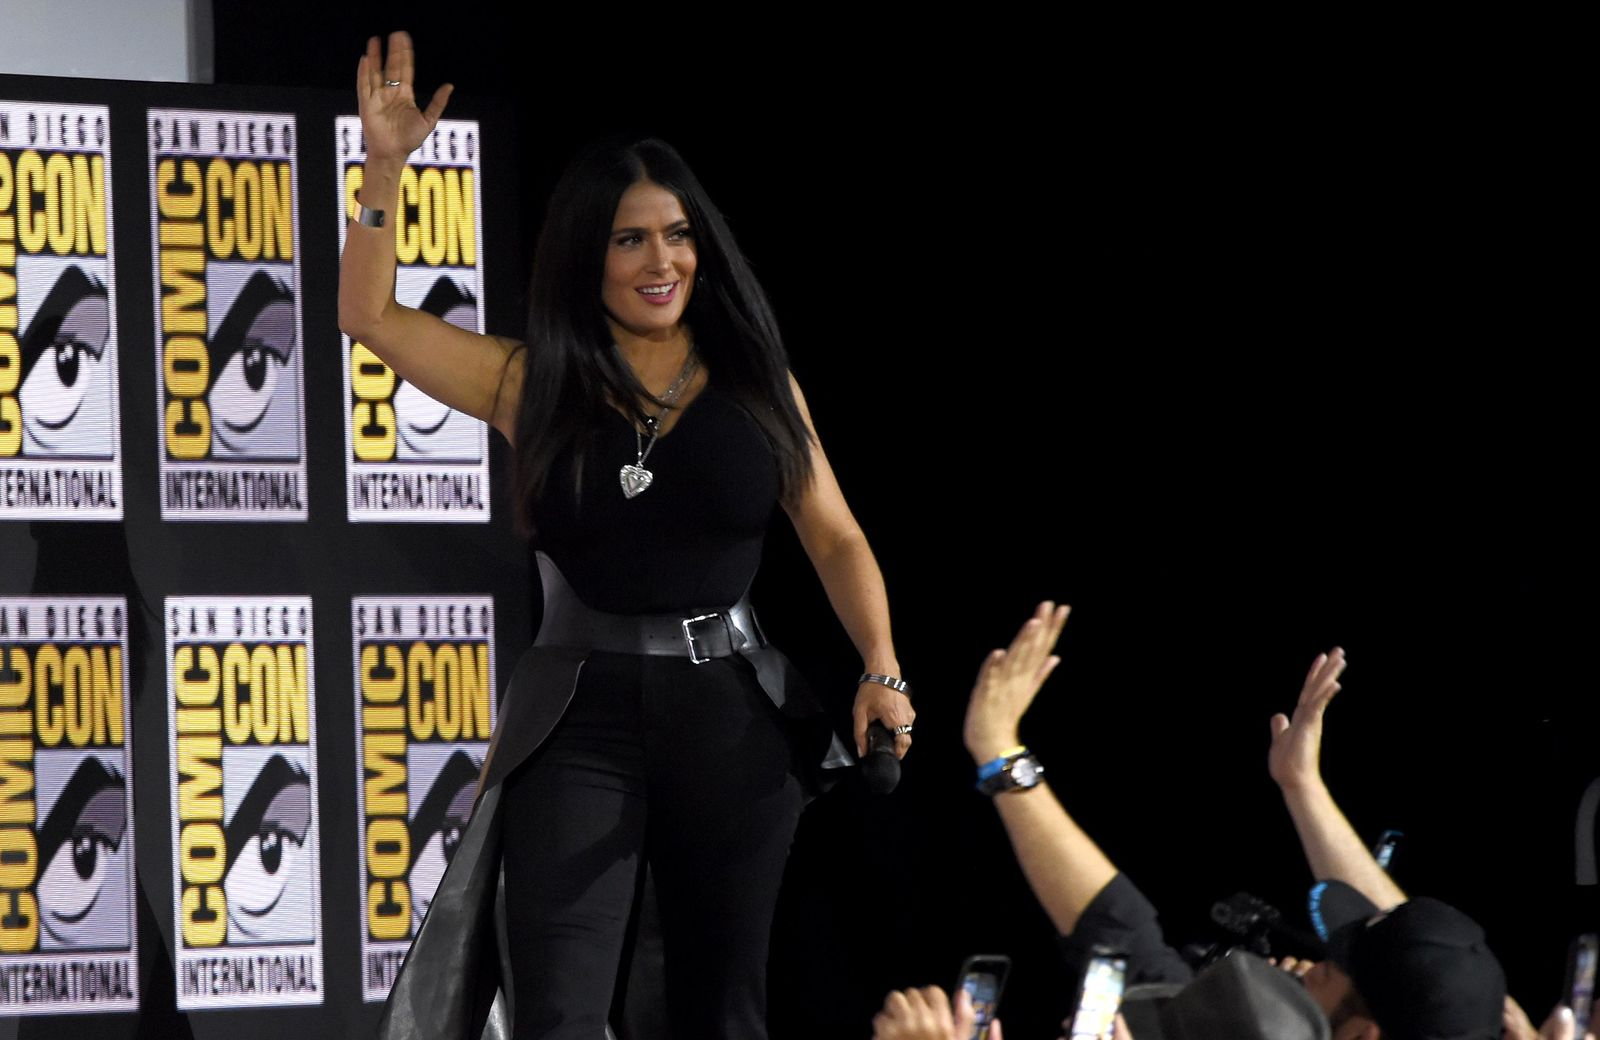 Salma Hayek waves to the fans as she walks on stage at the Marvel Studios panel on day three of Comic-Con International on Saturday, July 20, 2019, in San Diego. (Photo by Chris Pizzello/Invision/AP)